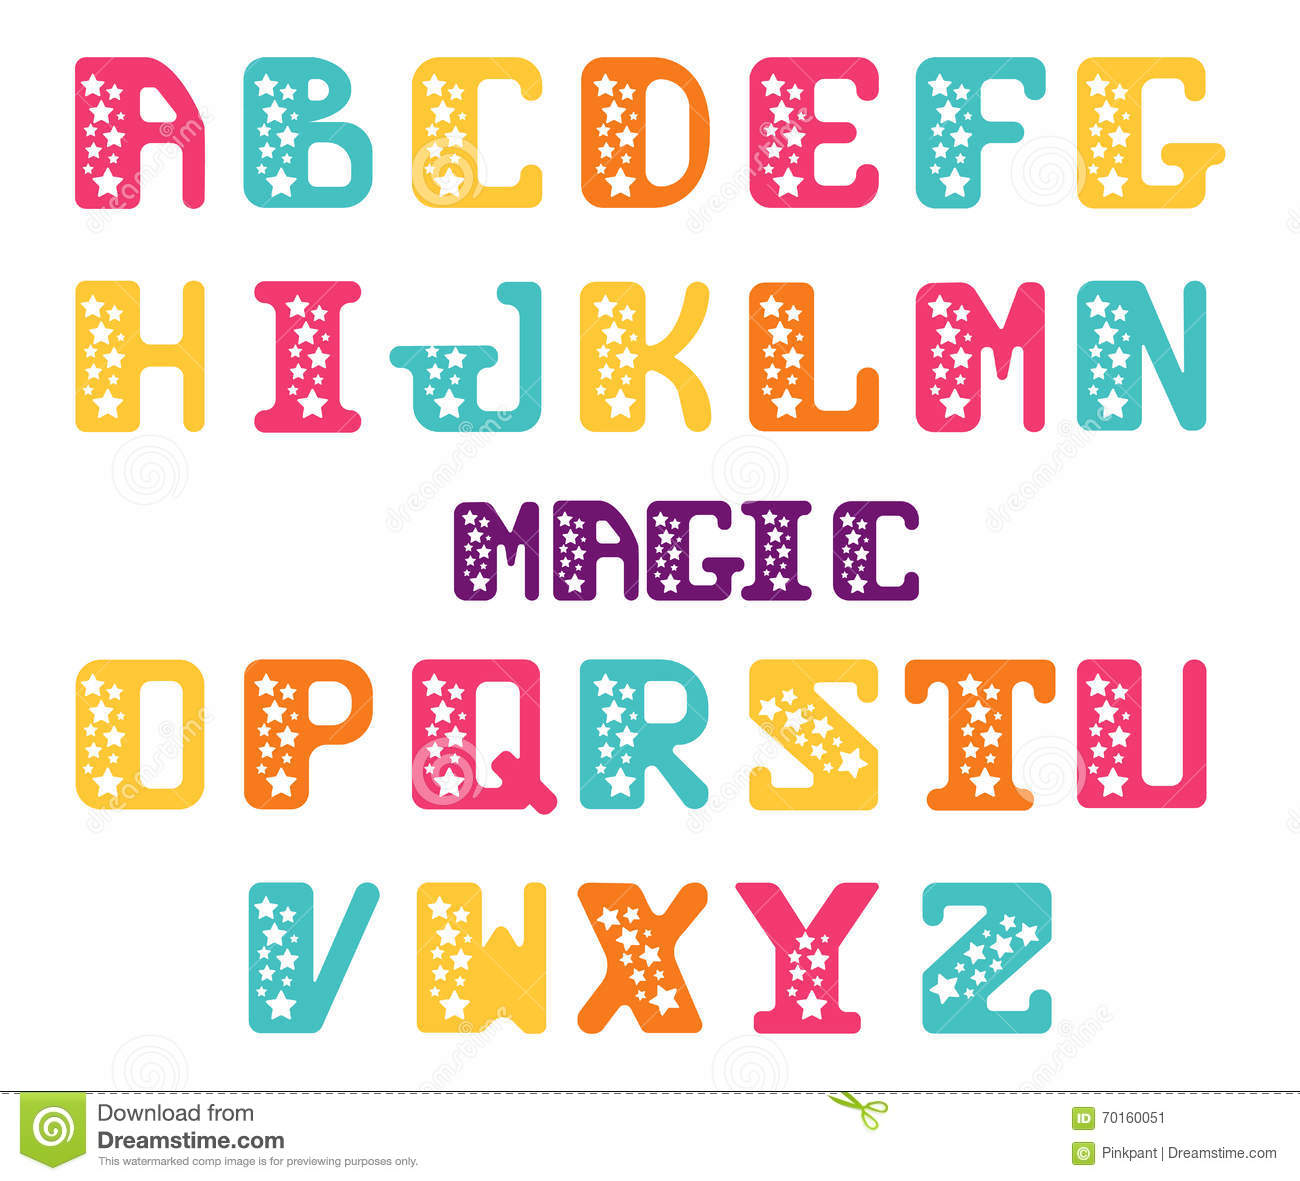 Alphabet Of Capital Letters With Stars Star Serif Font. Pink Polka Dot Banners. Dup Murals. Mobile Site Banners. Foreign Lettering. Summer Night Signs. Development Murals. Manhattan Murals. Traffic Qatar Signs